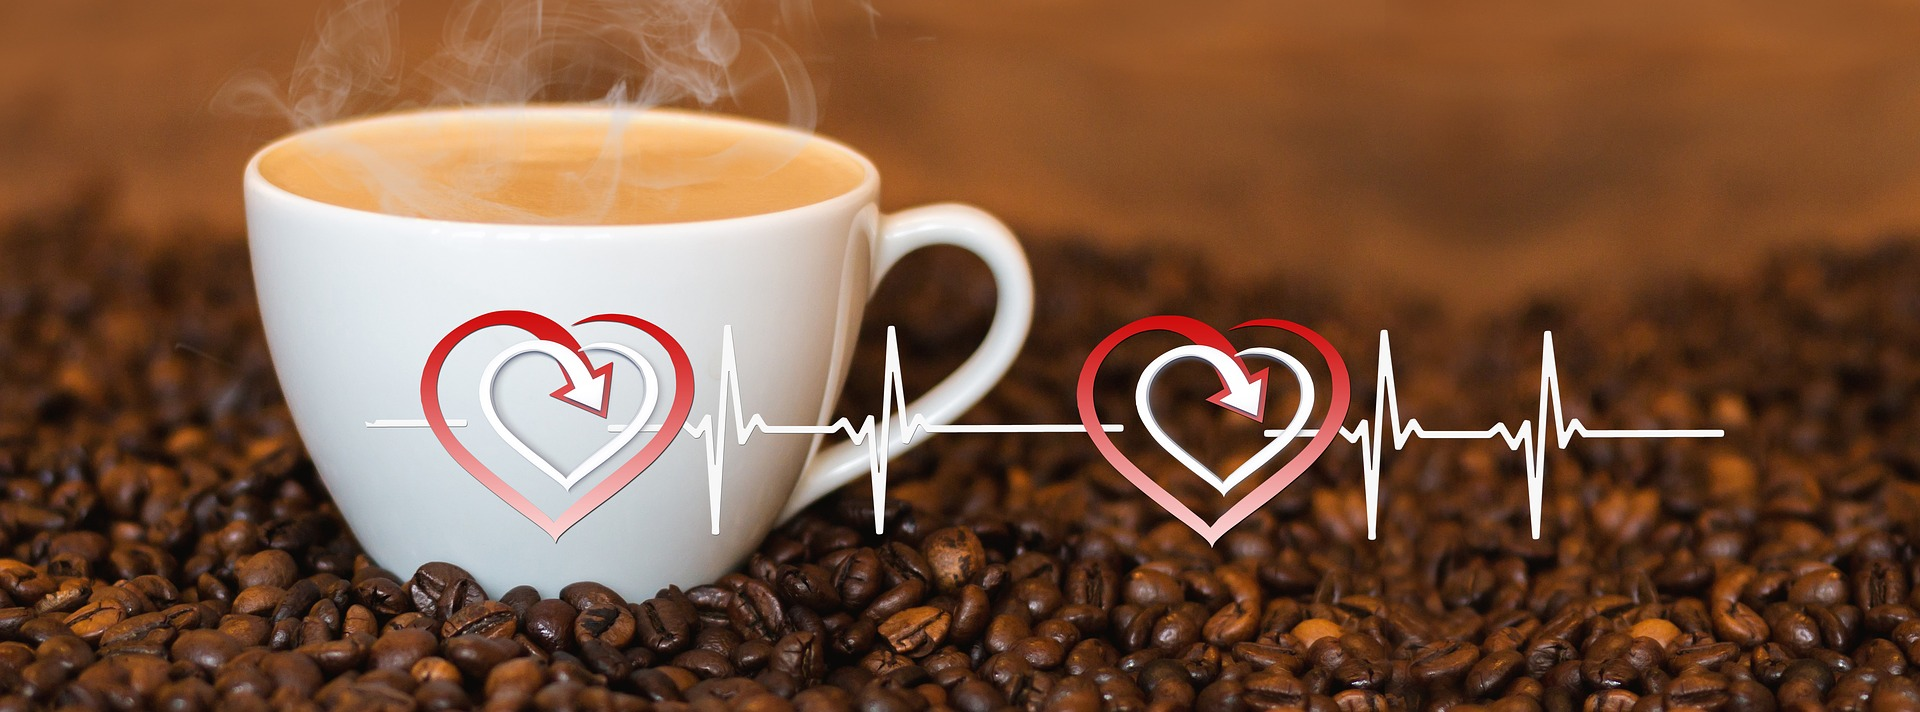 Caffeine and Sleep - Heart Problems